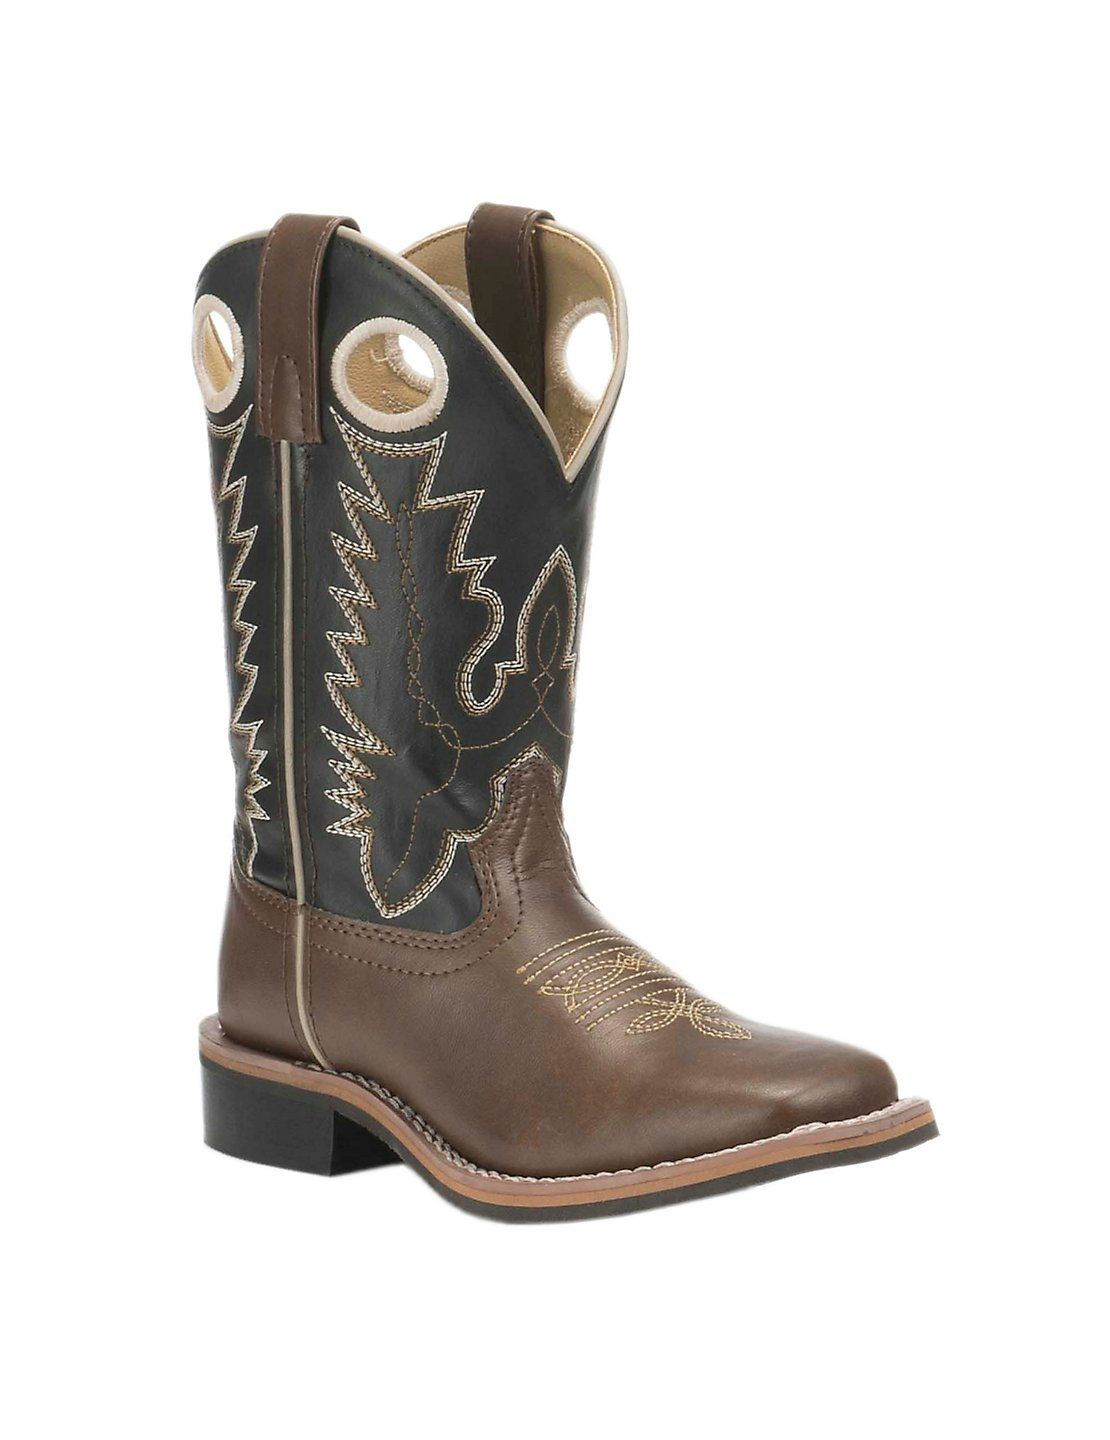 YOUTH Smoky Mountain Boots Western Cowboy NEW Leather Black /& Tan